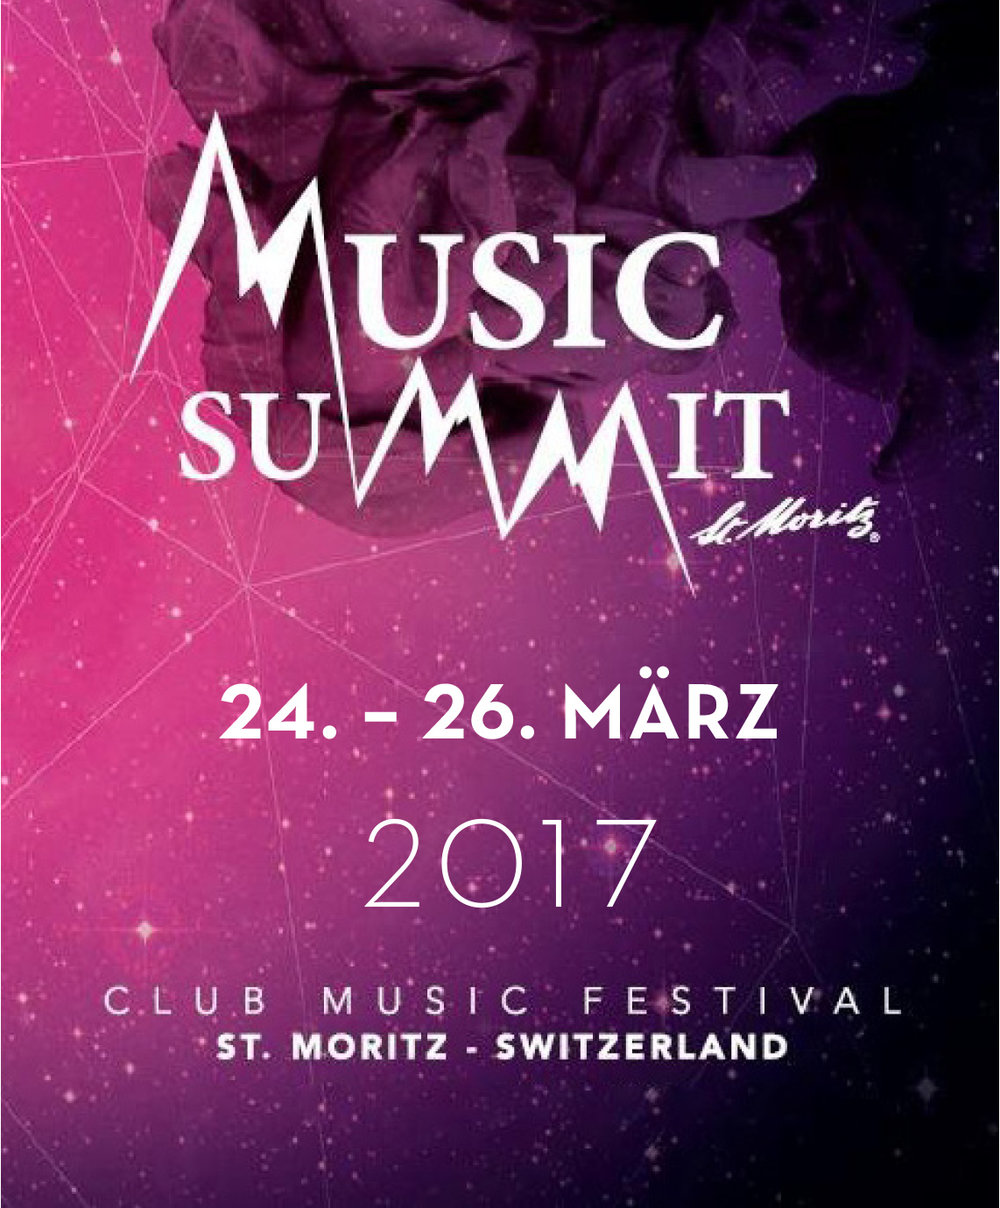 music-summit-elparadiso-2017.jpg